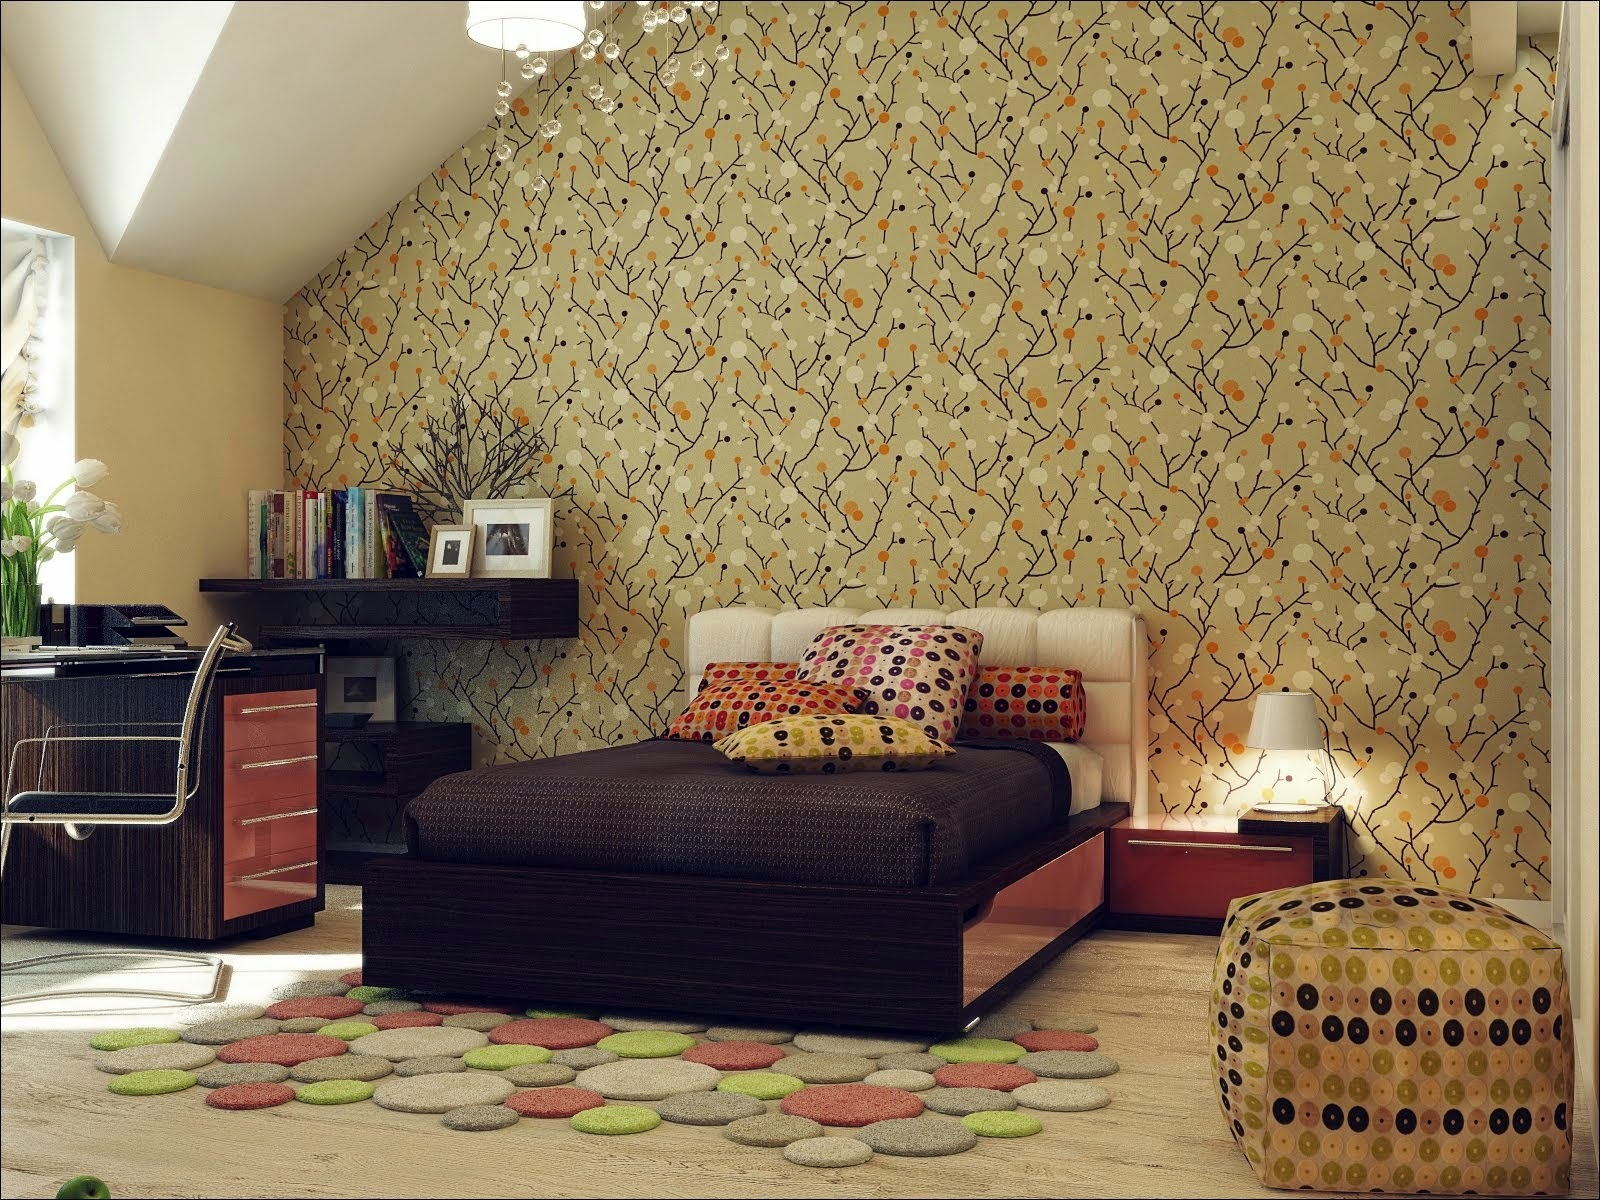 Wallpaper Room Ideas photo - 6